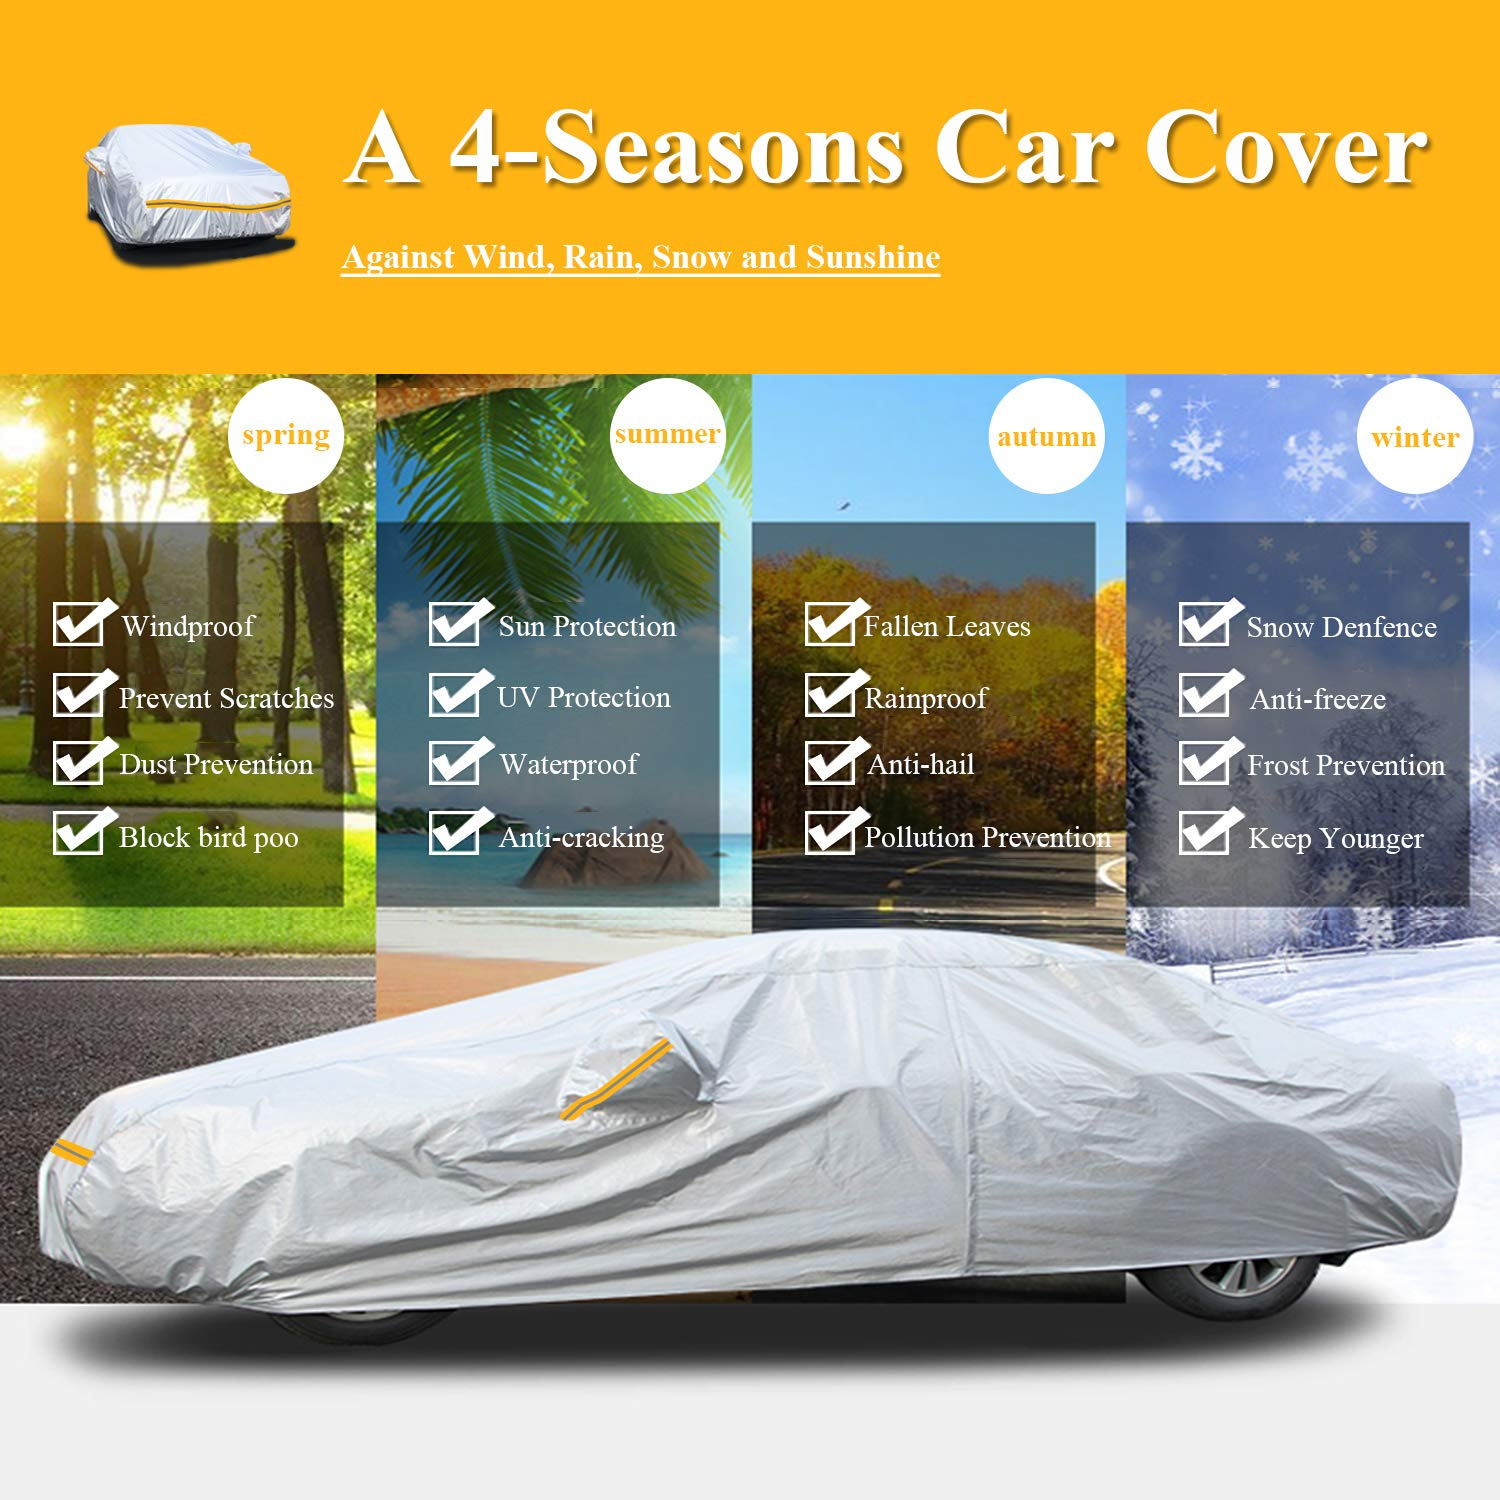 Snow Protect Car Cover,6 Layers Car Cover Outdoor Protection Winter Car Cover Waterproof All Weather Universal Full Car Cover with Zipper A9-3XL+ Fits Sedan 191 to 200